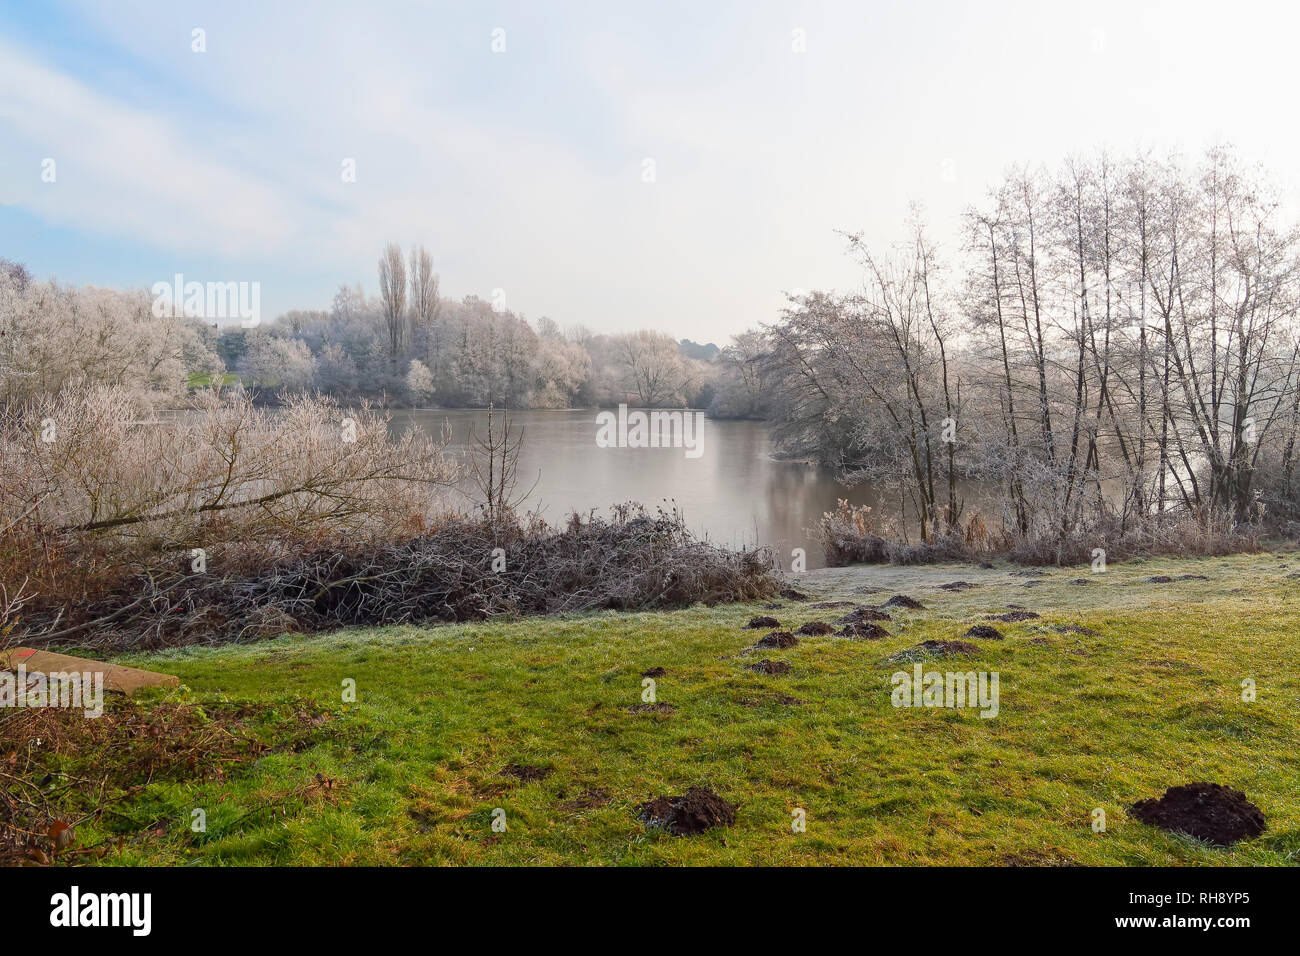 Molehills On The Banks Of A Lake Lead Down To The Water On A Cold Frostt And Misty Winters Morning Stock Photo Alamy